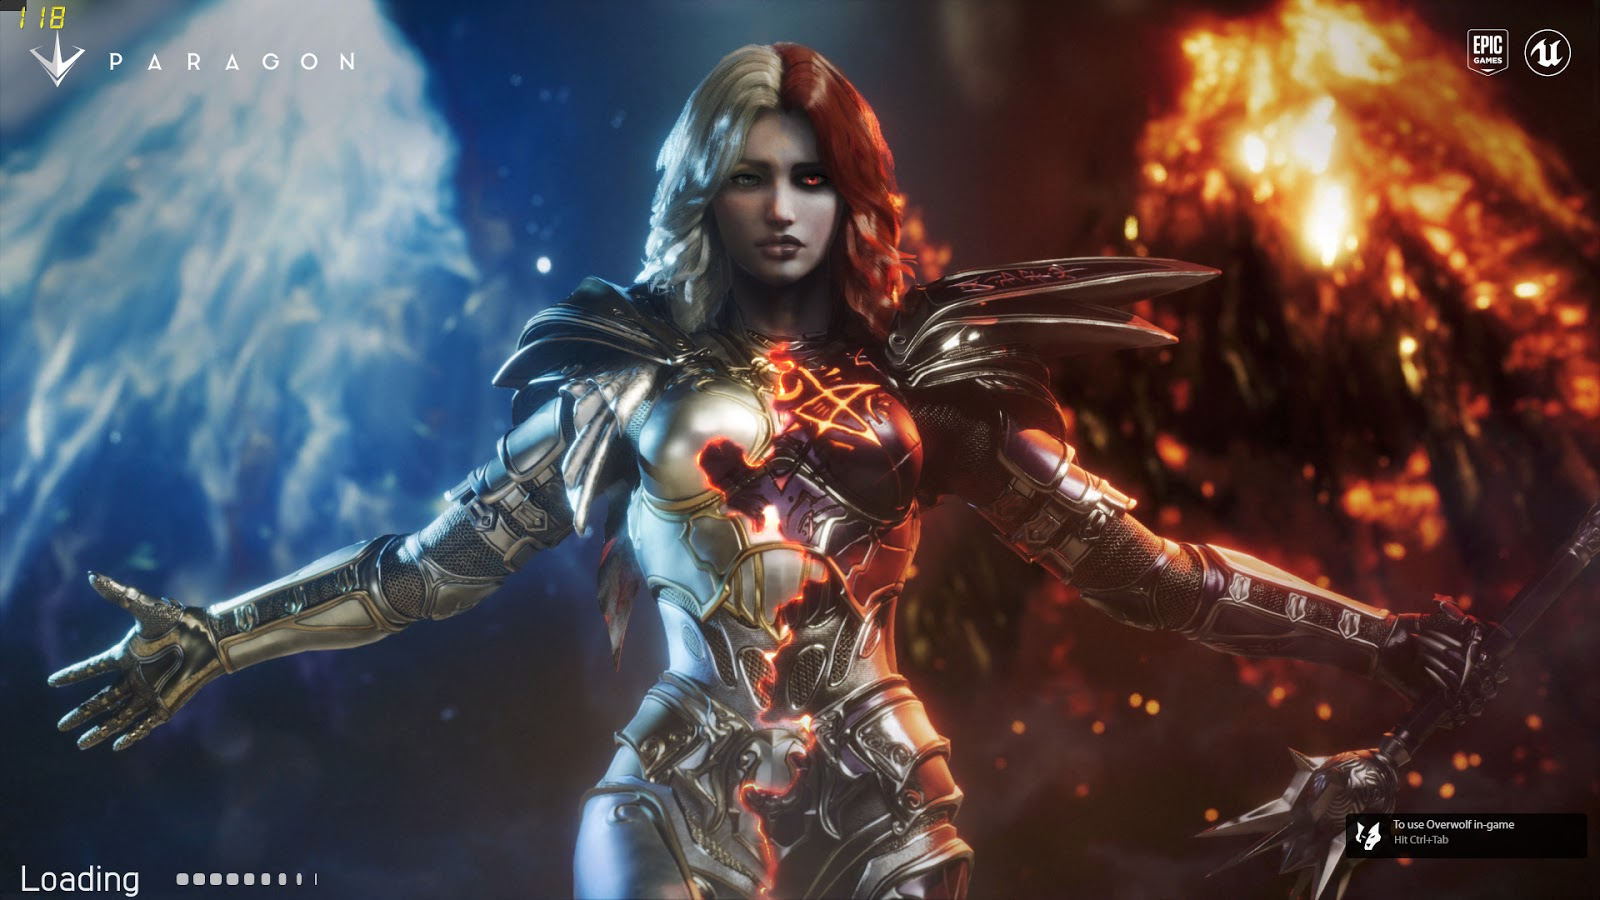 PARAGON, Game MOBA baru dengan gameplay anti-mainstream! - 47BAPF blogspot~